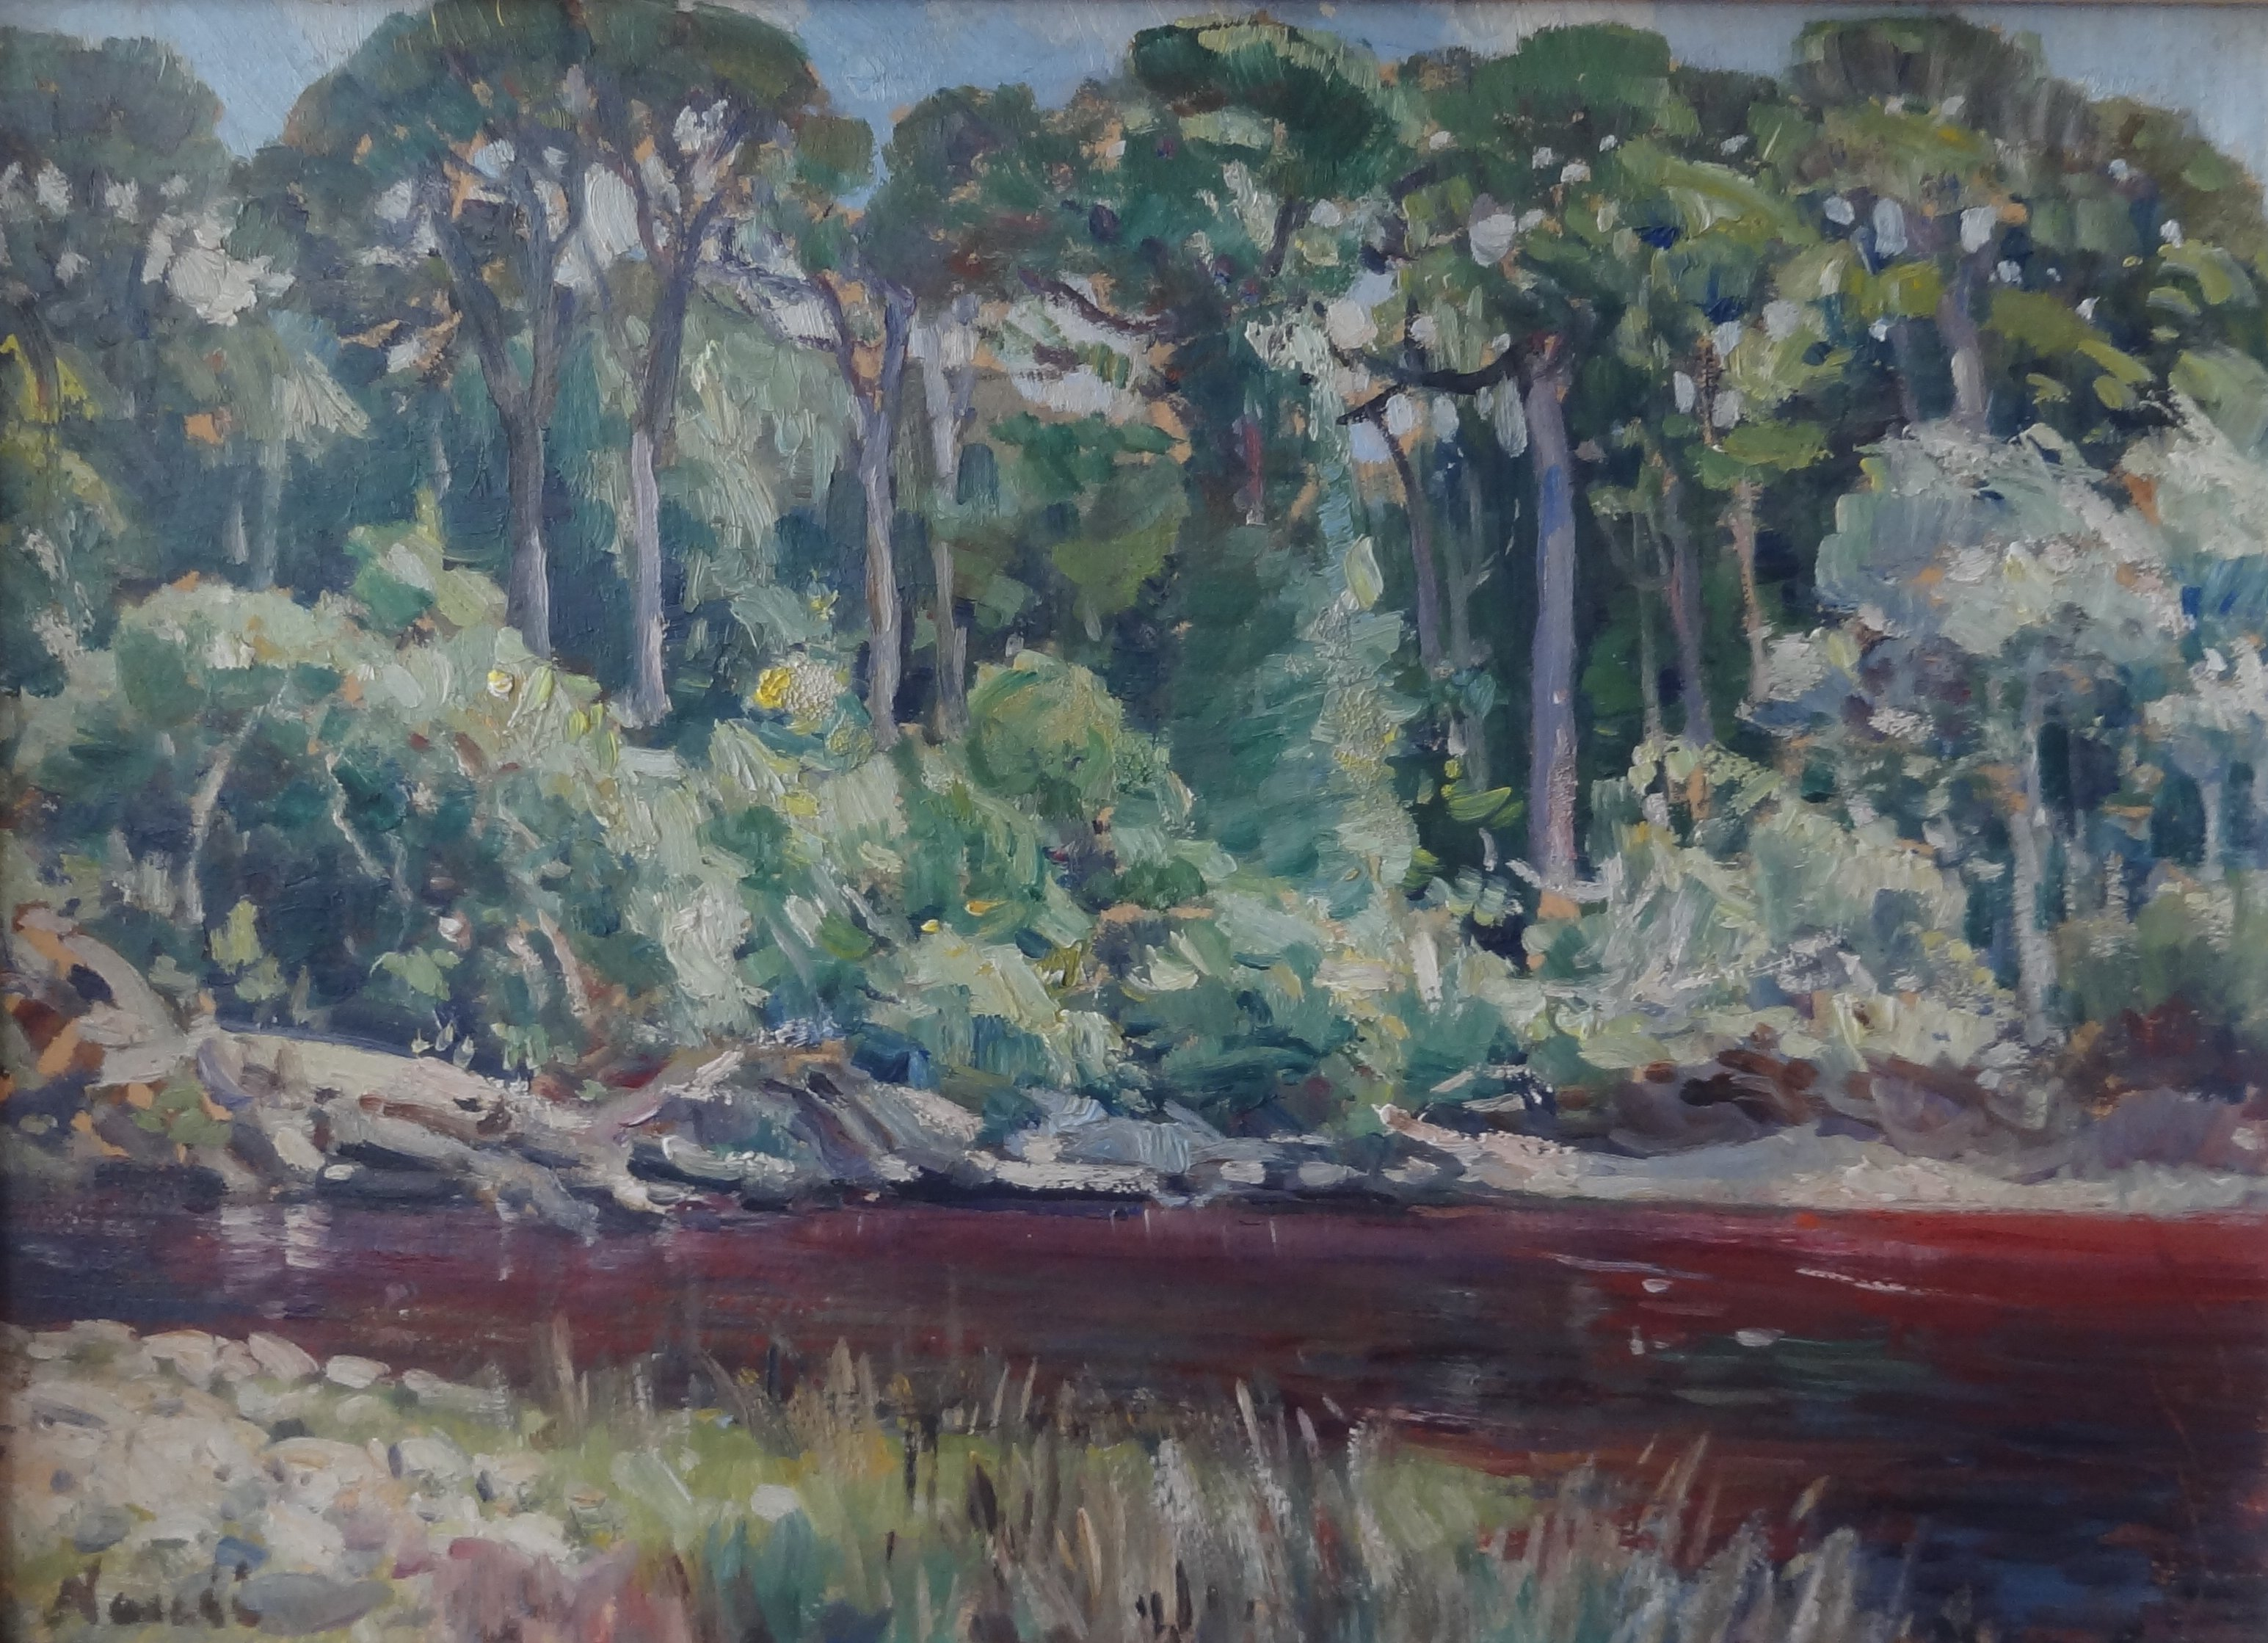 Hugo-Naude-ZTrees-at-River-oil-on-board-26-x-25cm (1)